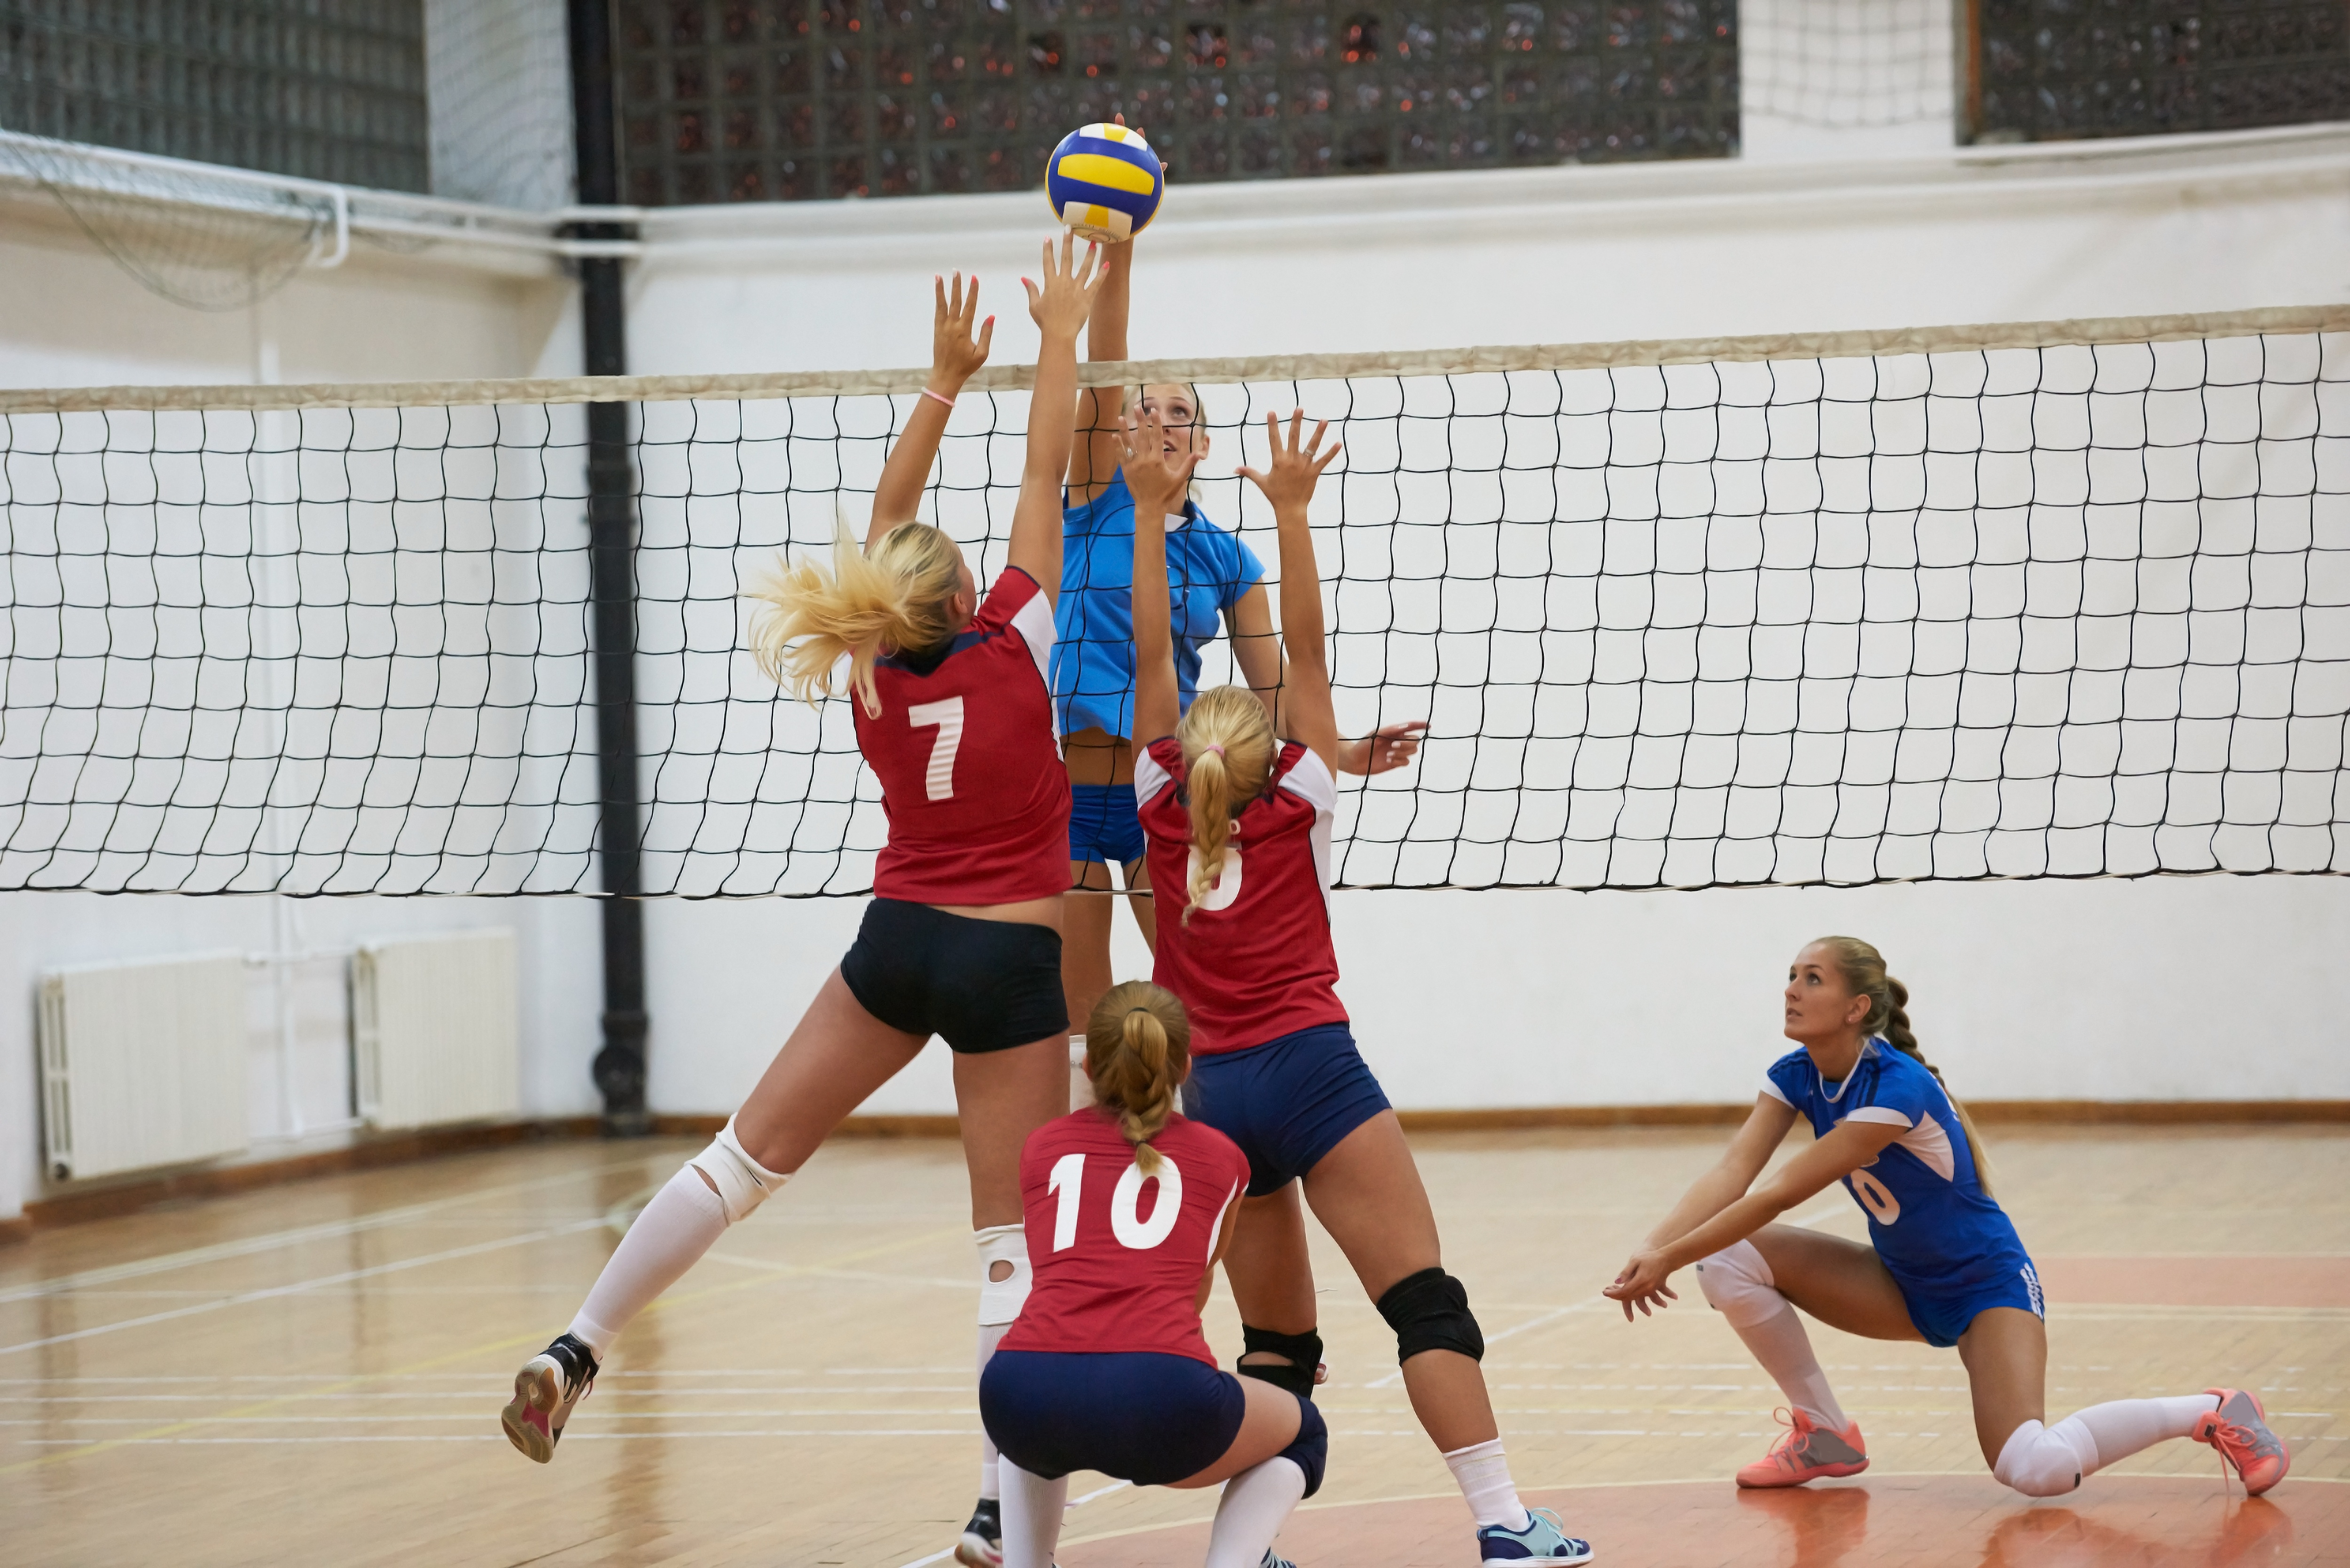 Ankle Injuries in Volleyball